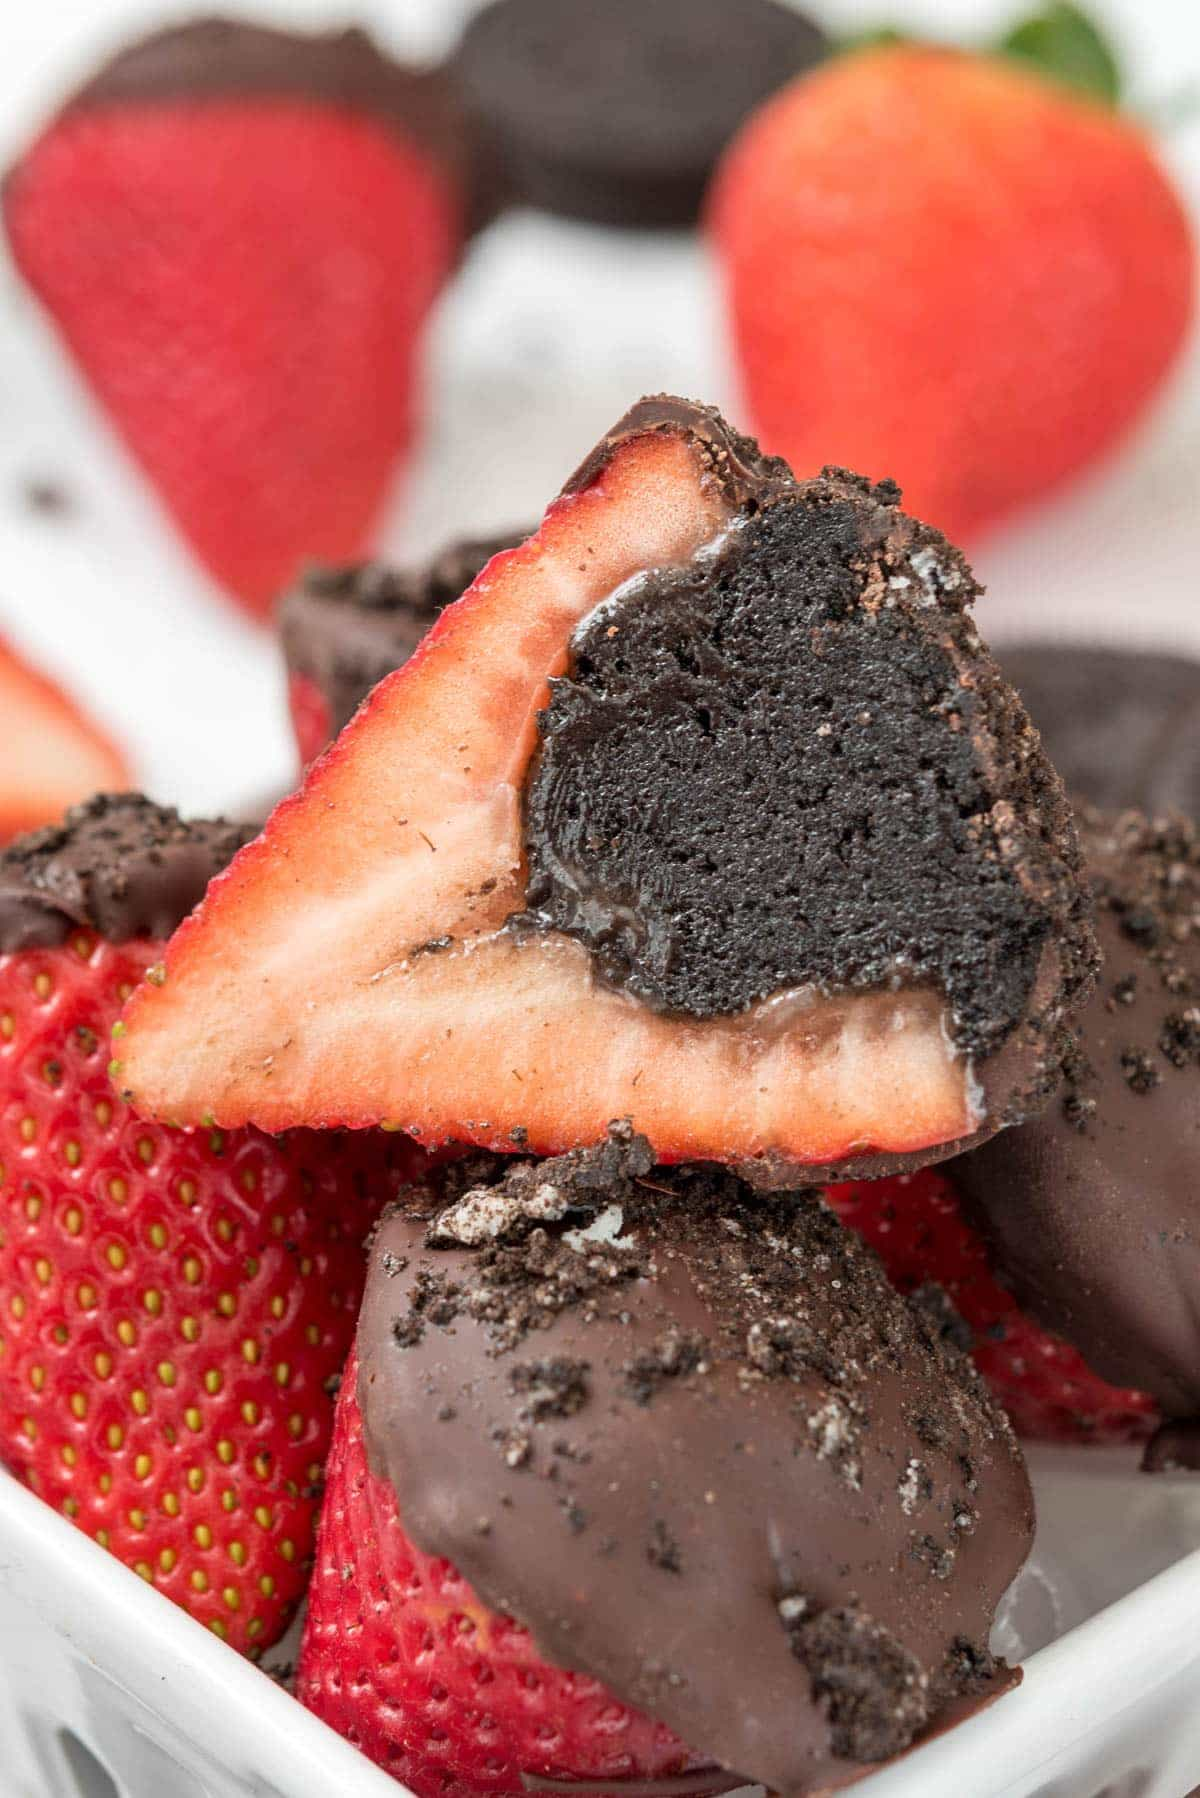 Oreo Truffle Dipped Strawberries